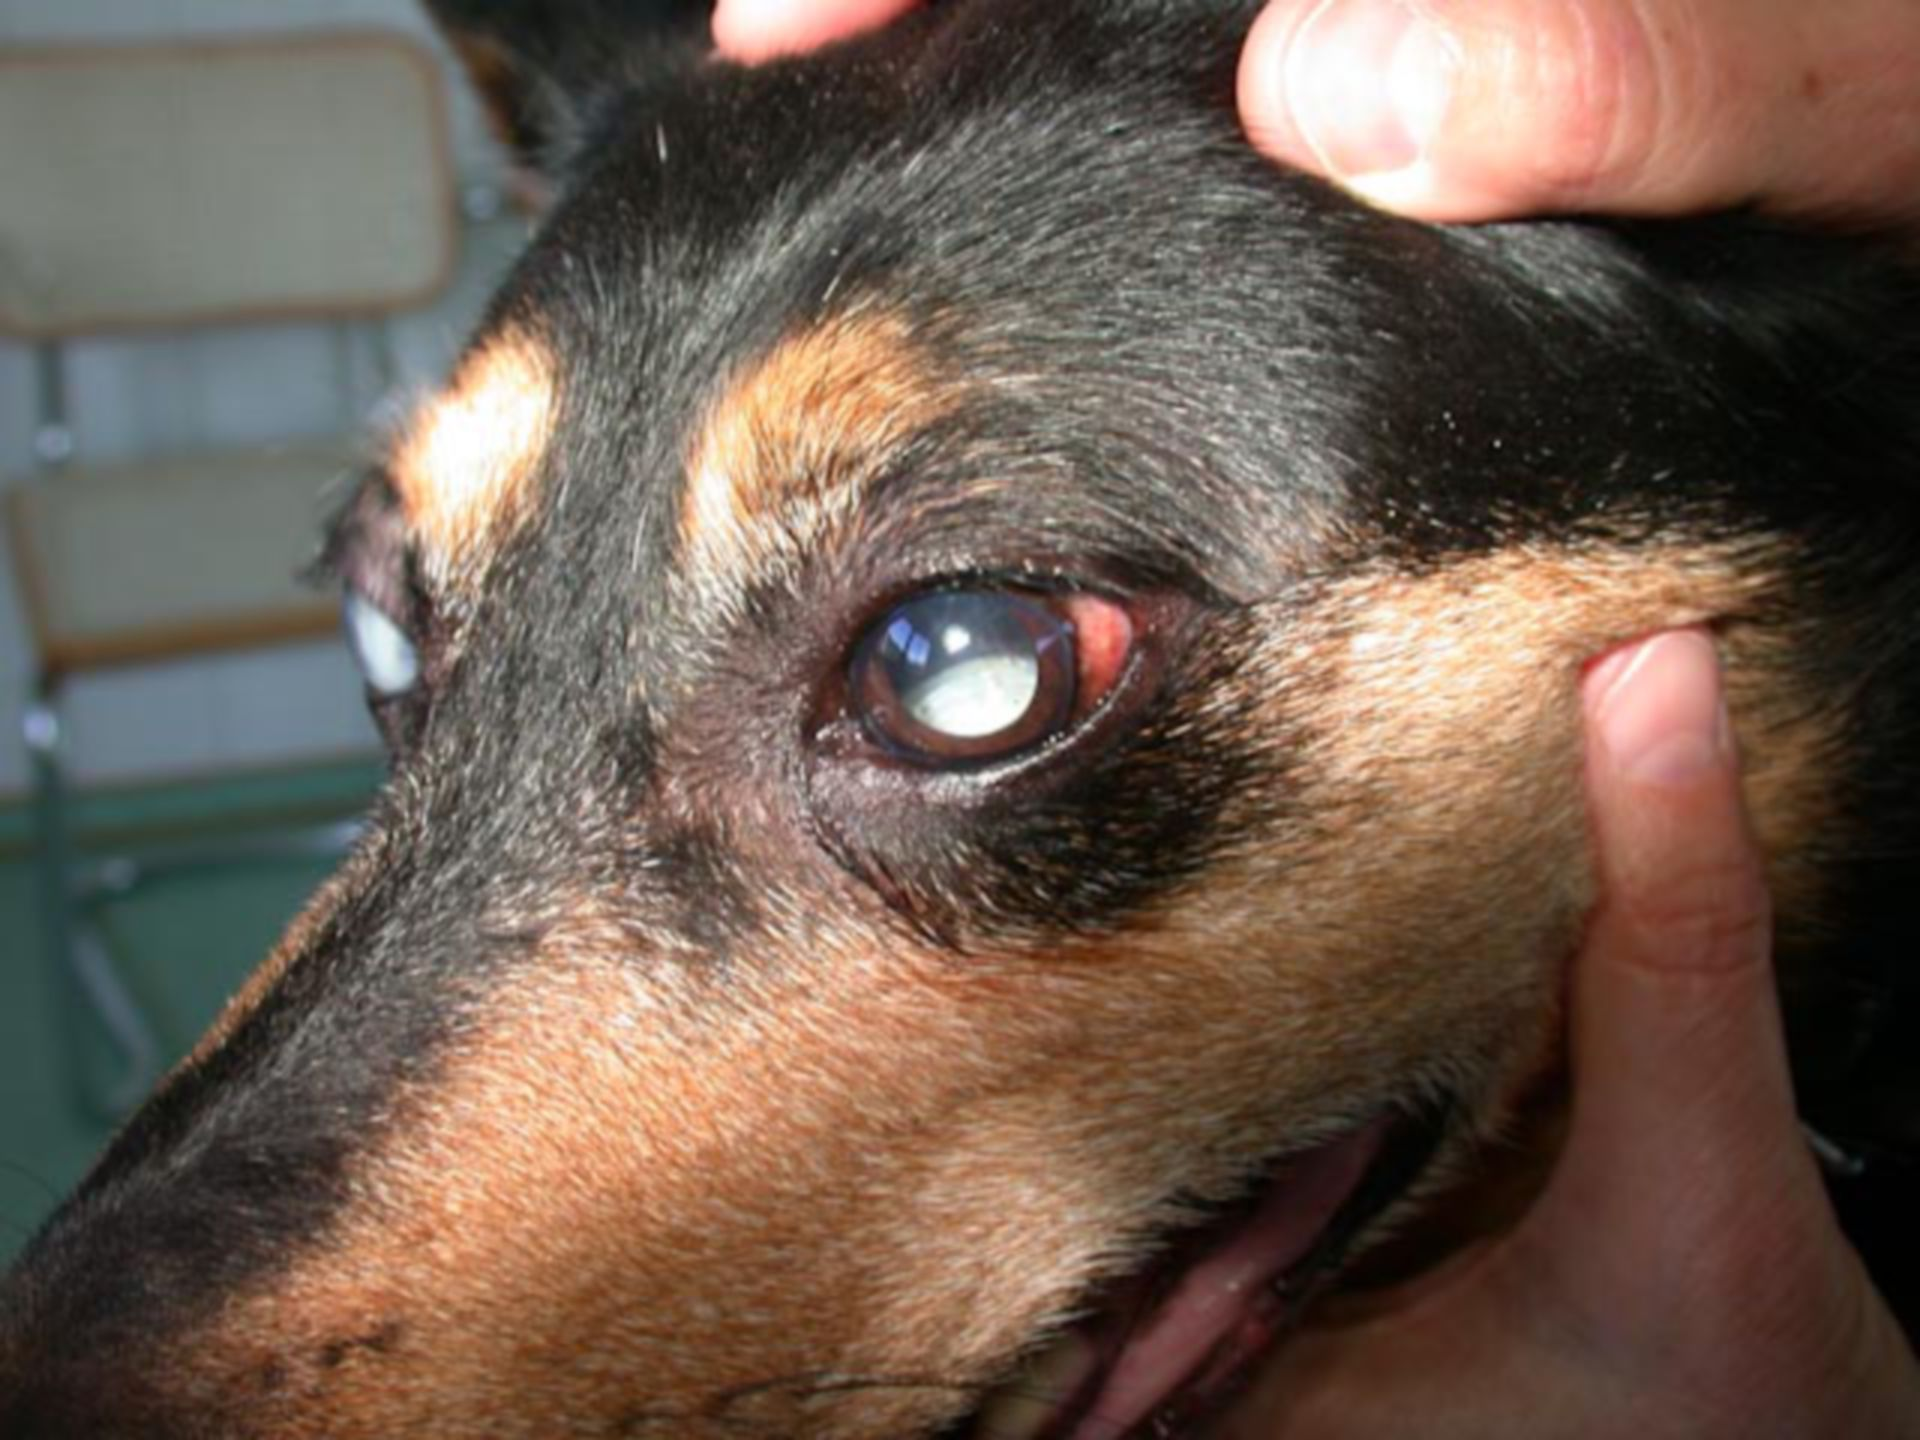 Veterinary medicine: Lens luxation in the posterior eye chamber